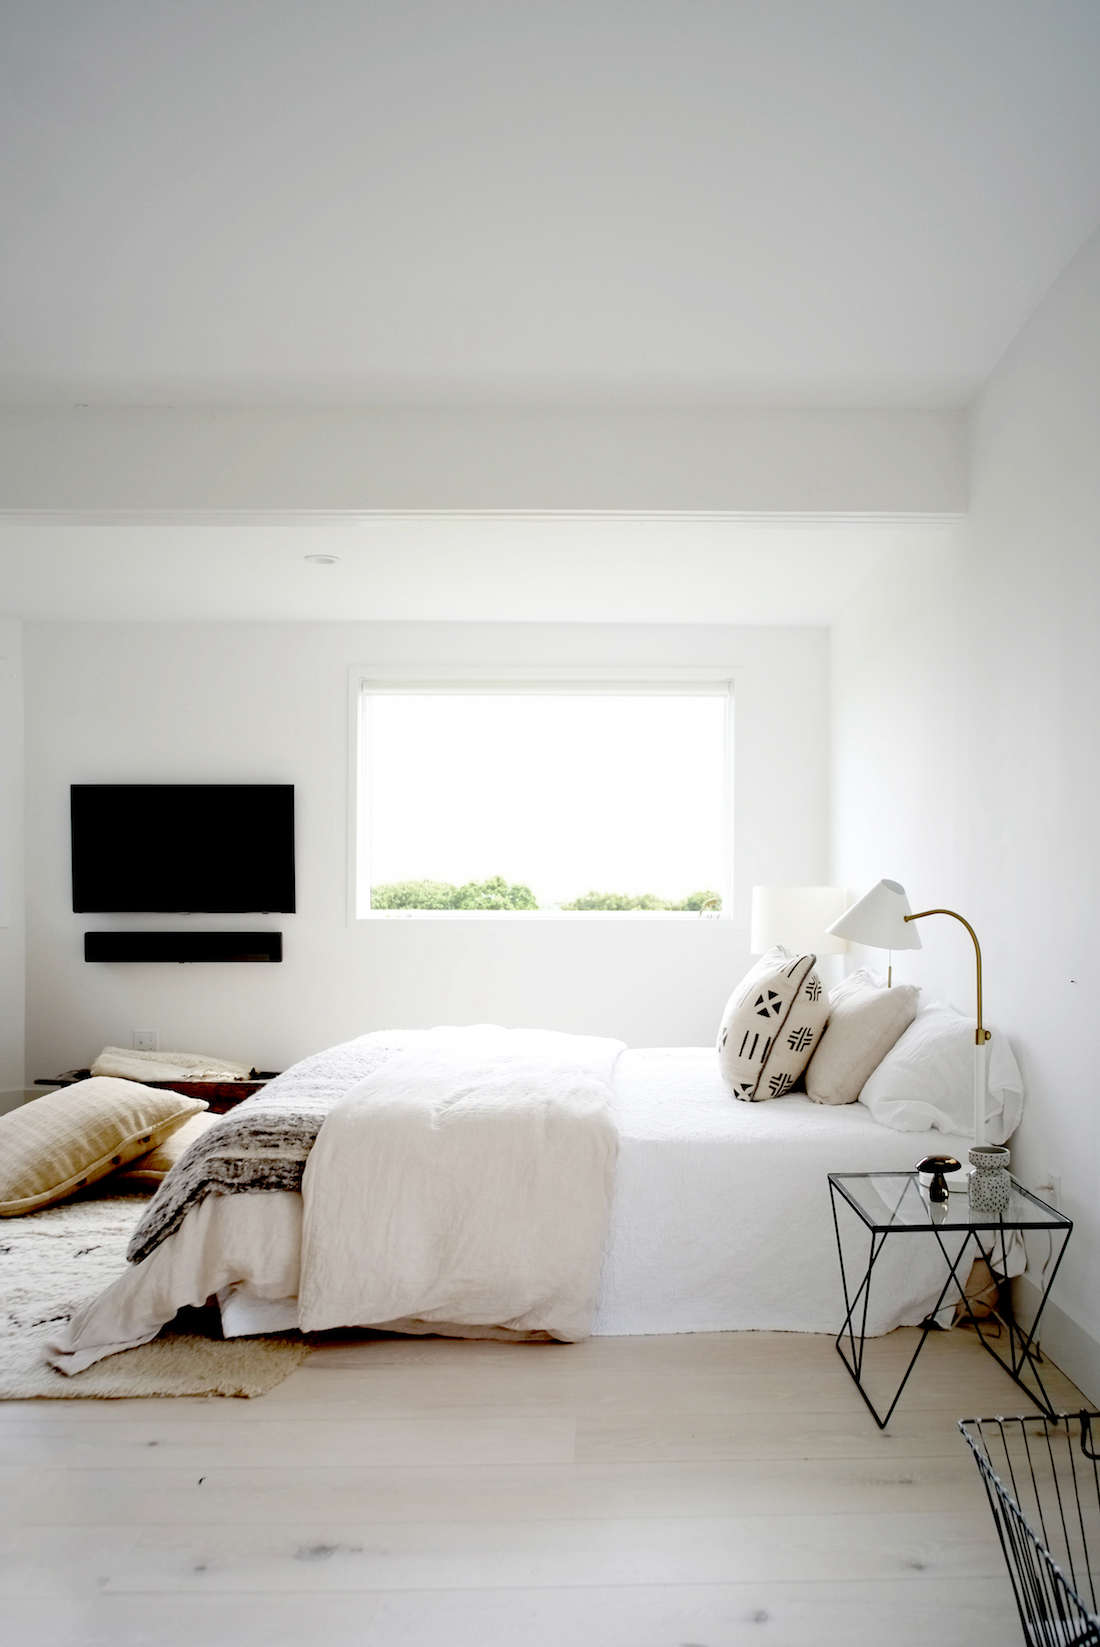 The master bedroom makes use of textiles sourced by the owners from all over the world. The Sony television and sound bar are so cleanly mounted that they manage to fit with the surroundings.